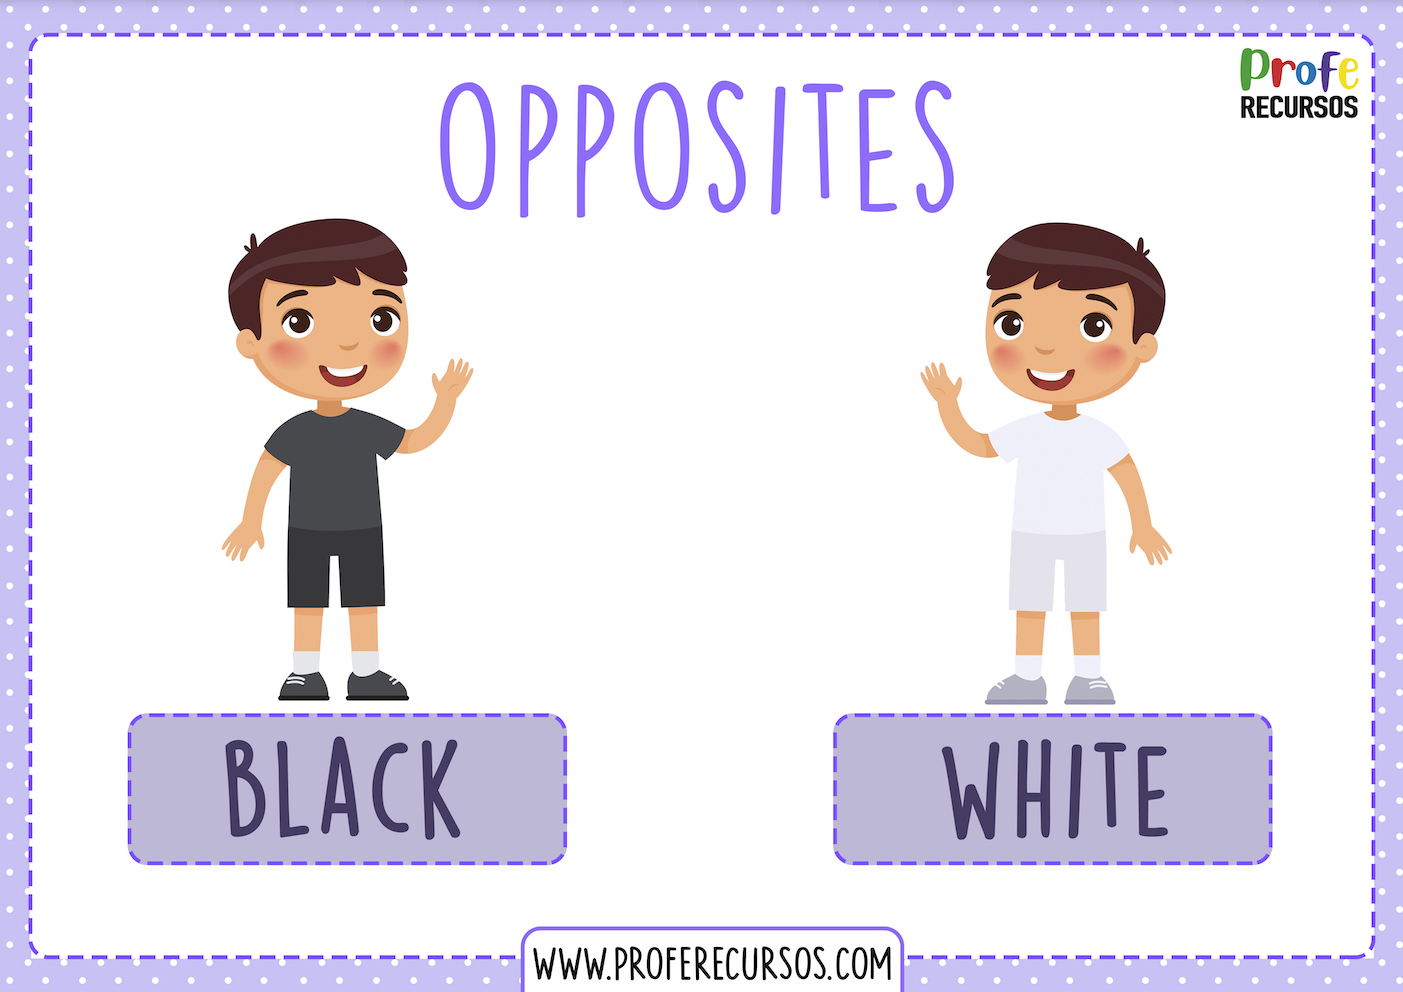 Opposites adjectives